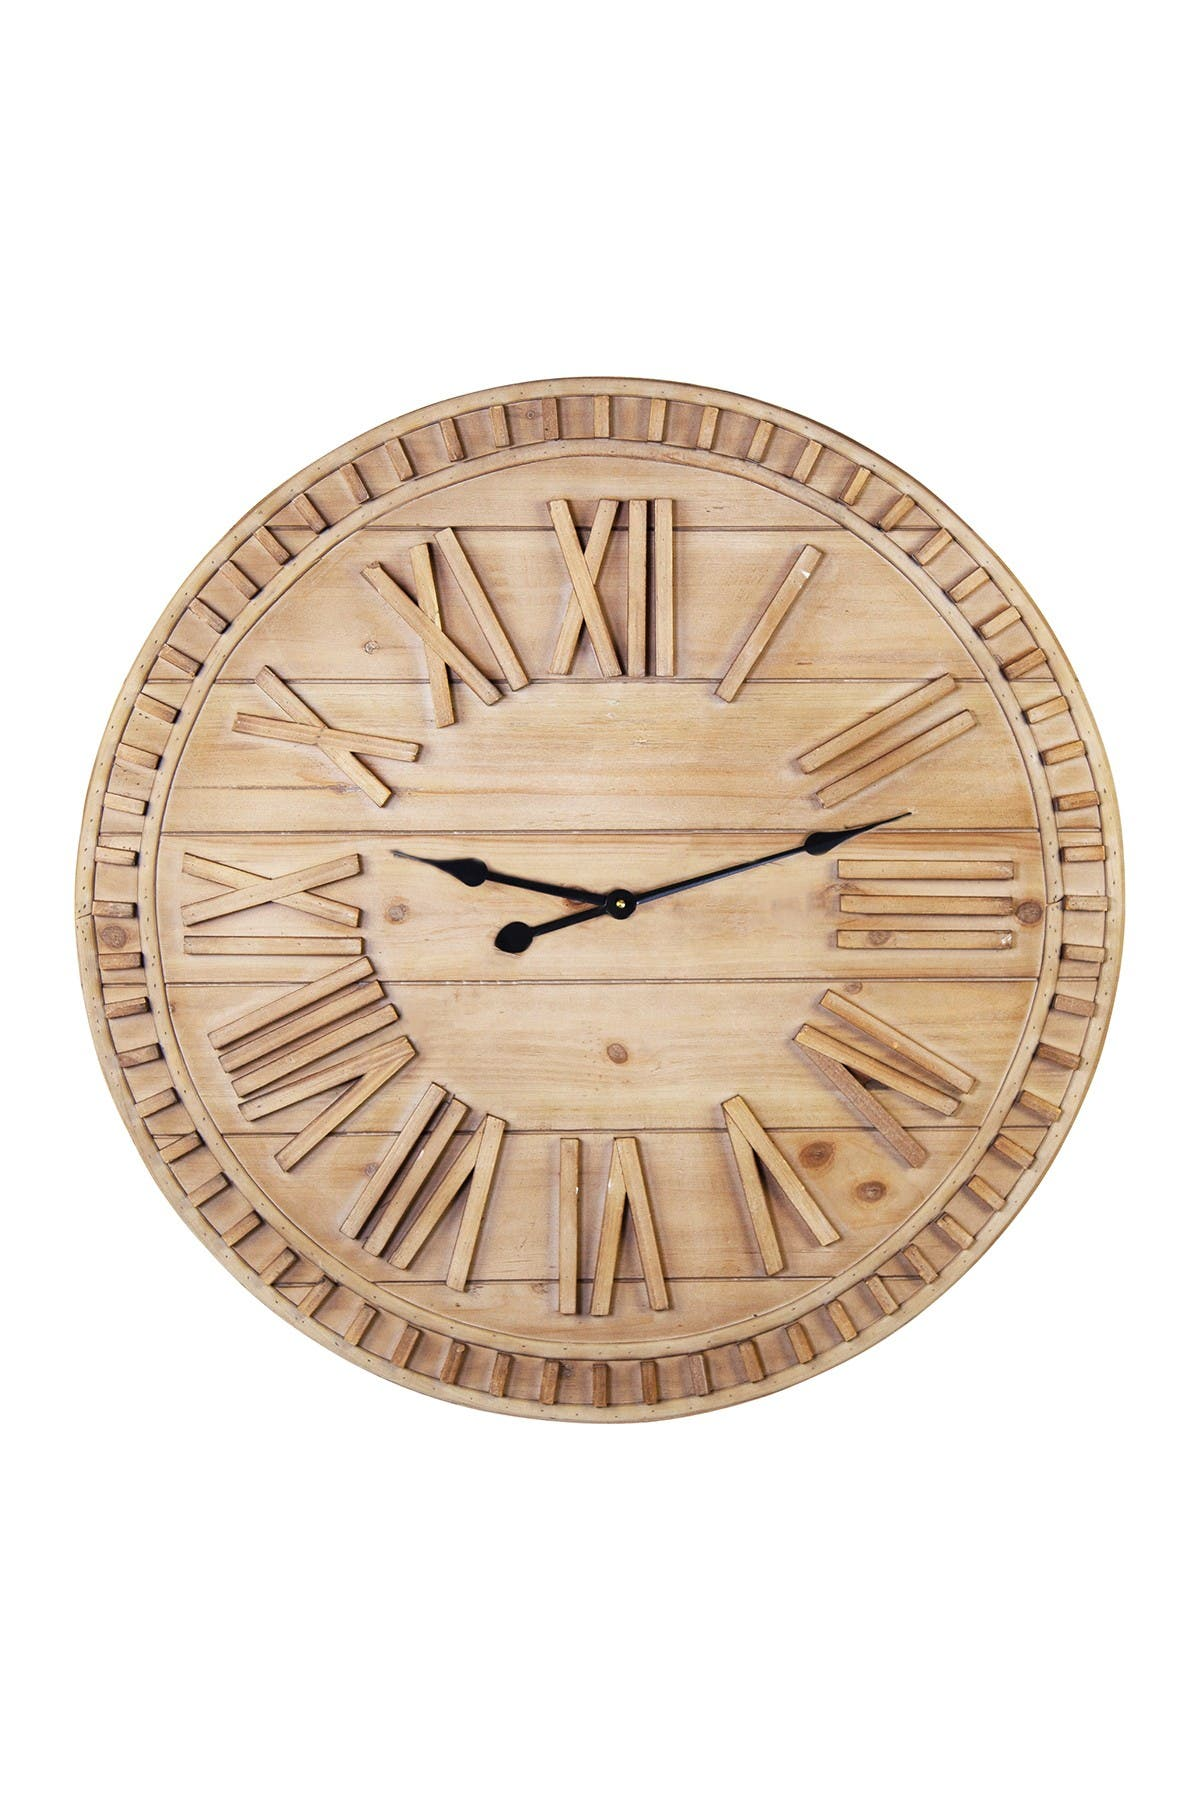 Stratton Home James Wooden Wall Clock at Nordstrom Rack